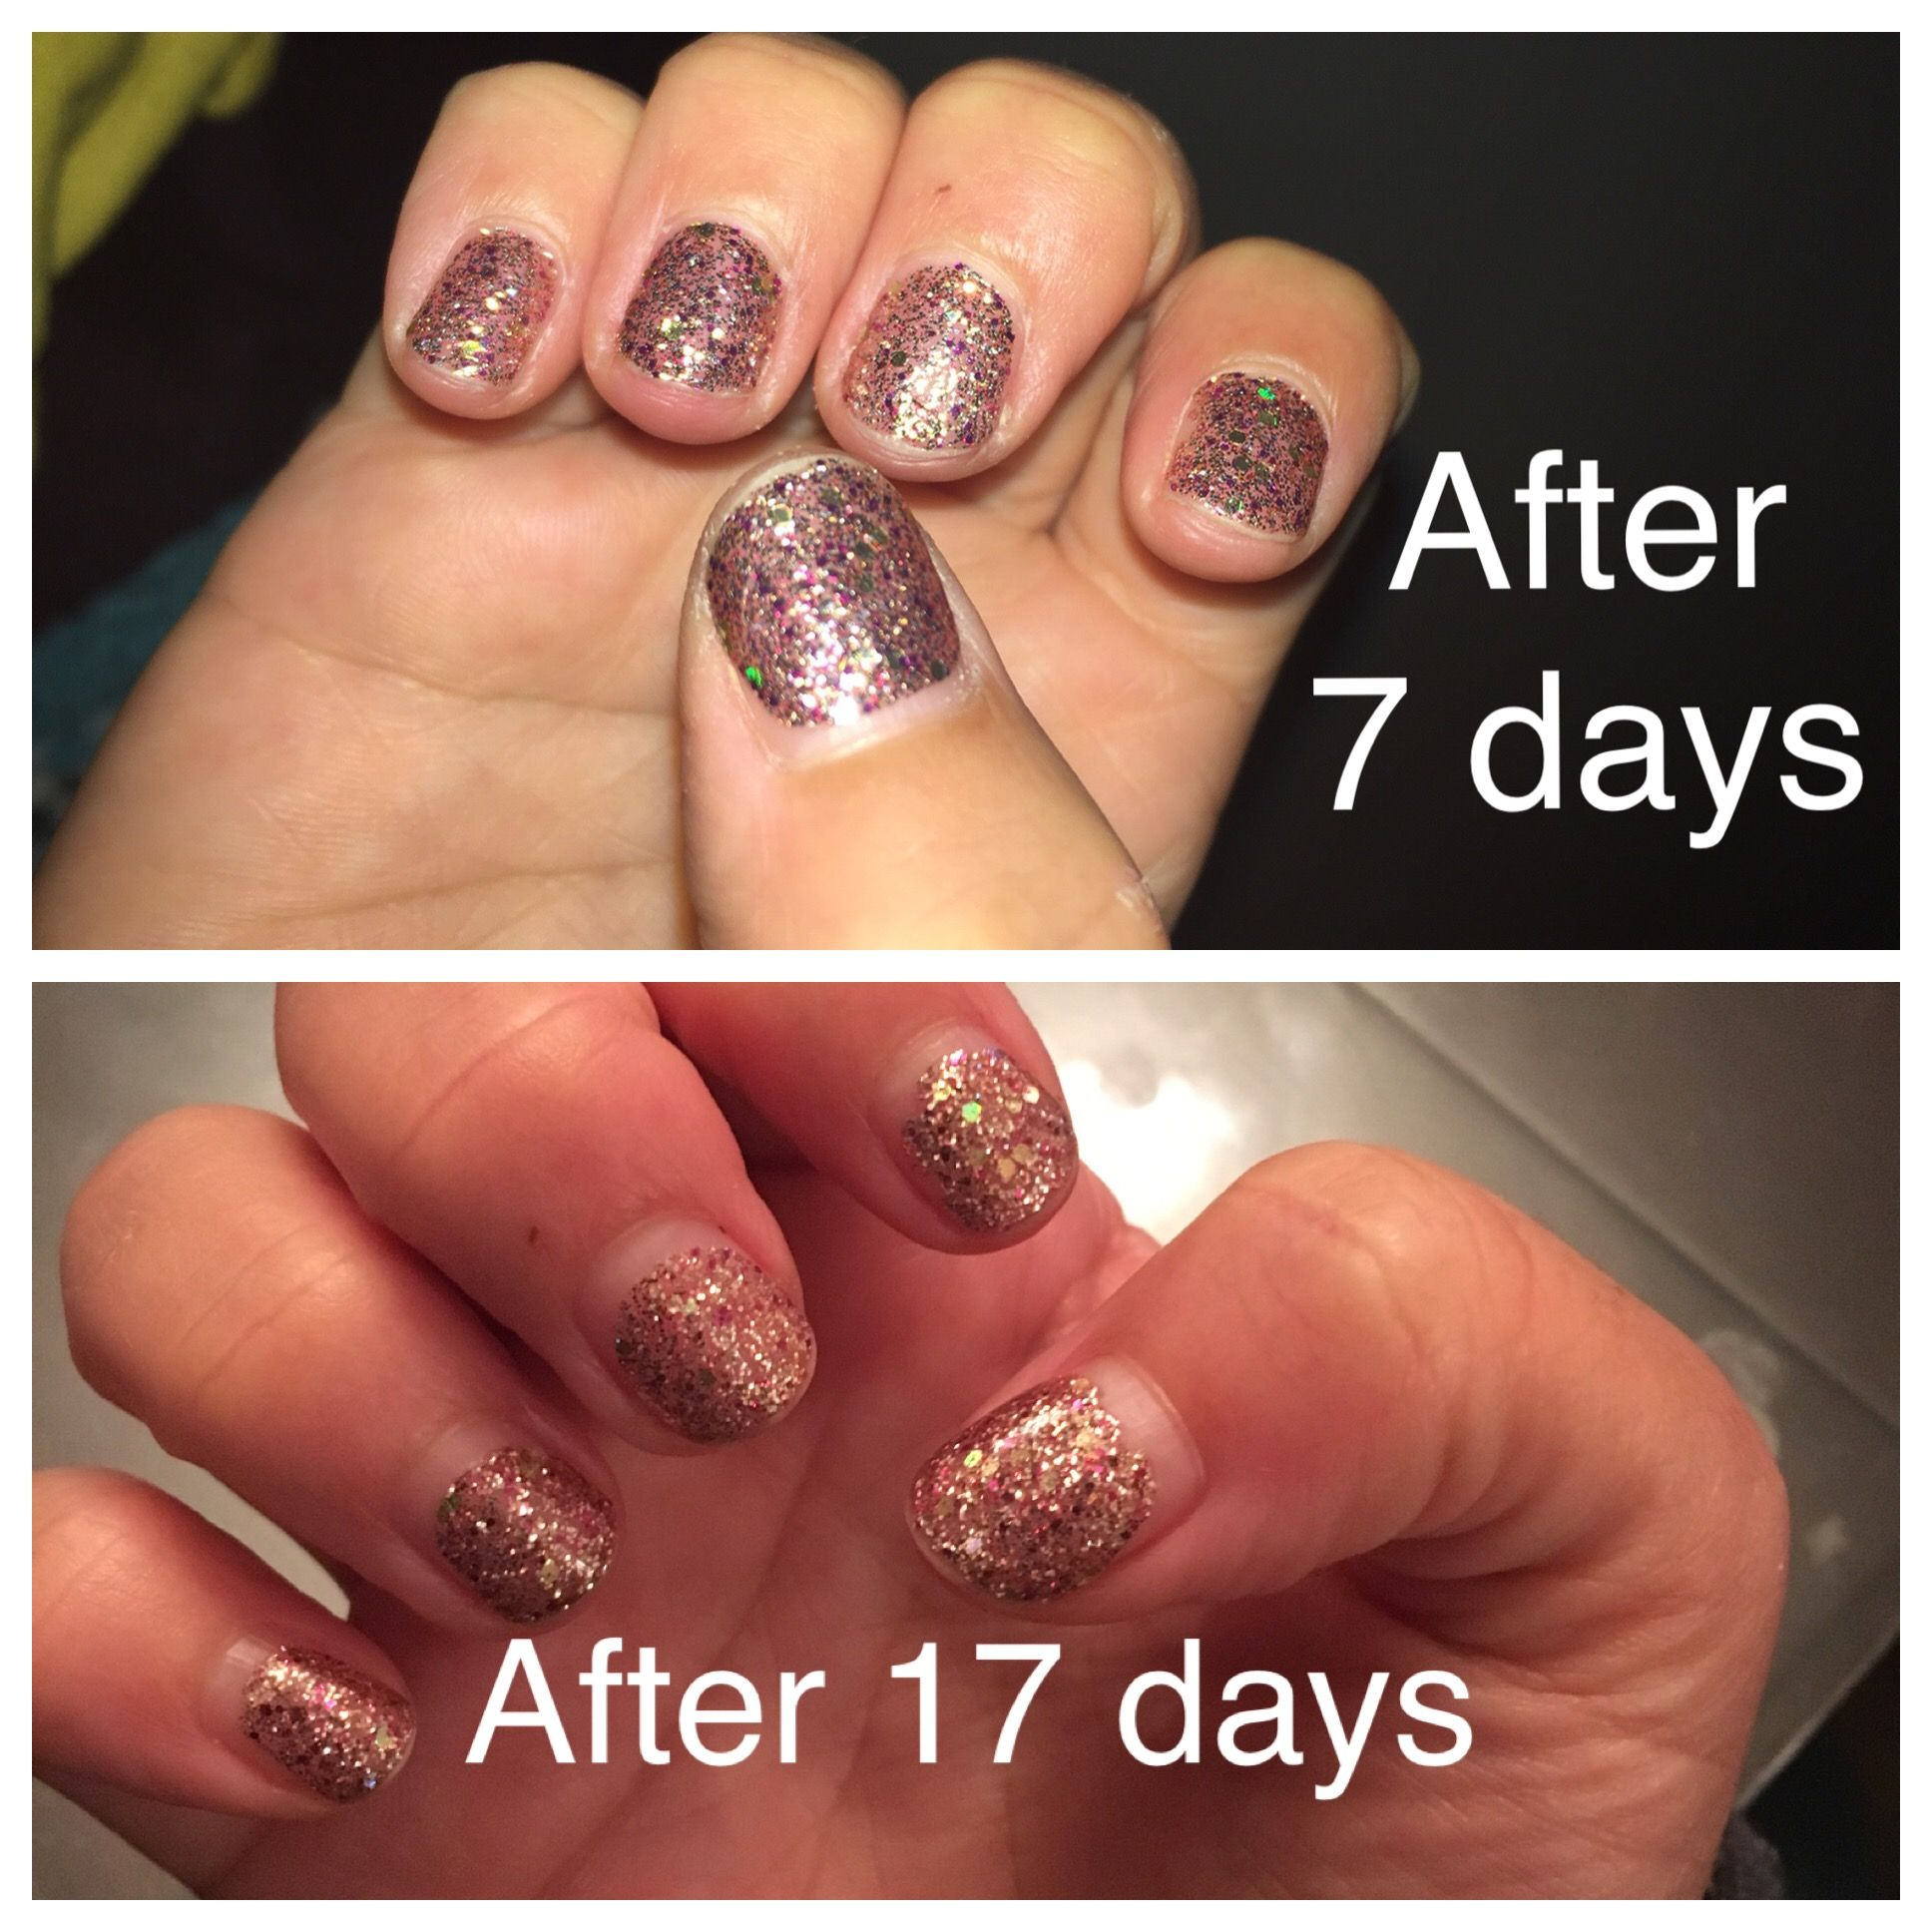 My 6 50 Diy Manicure That Last 17 Days Using Colorstreet Nail